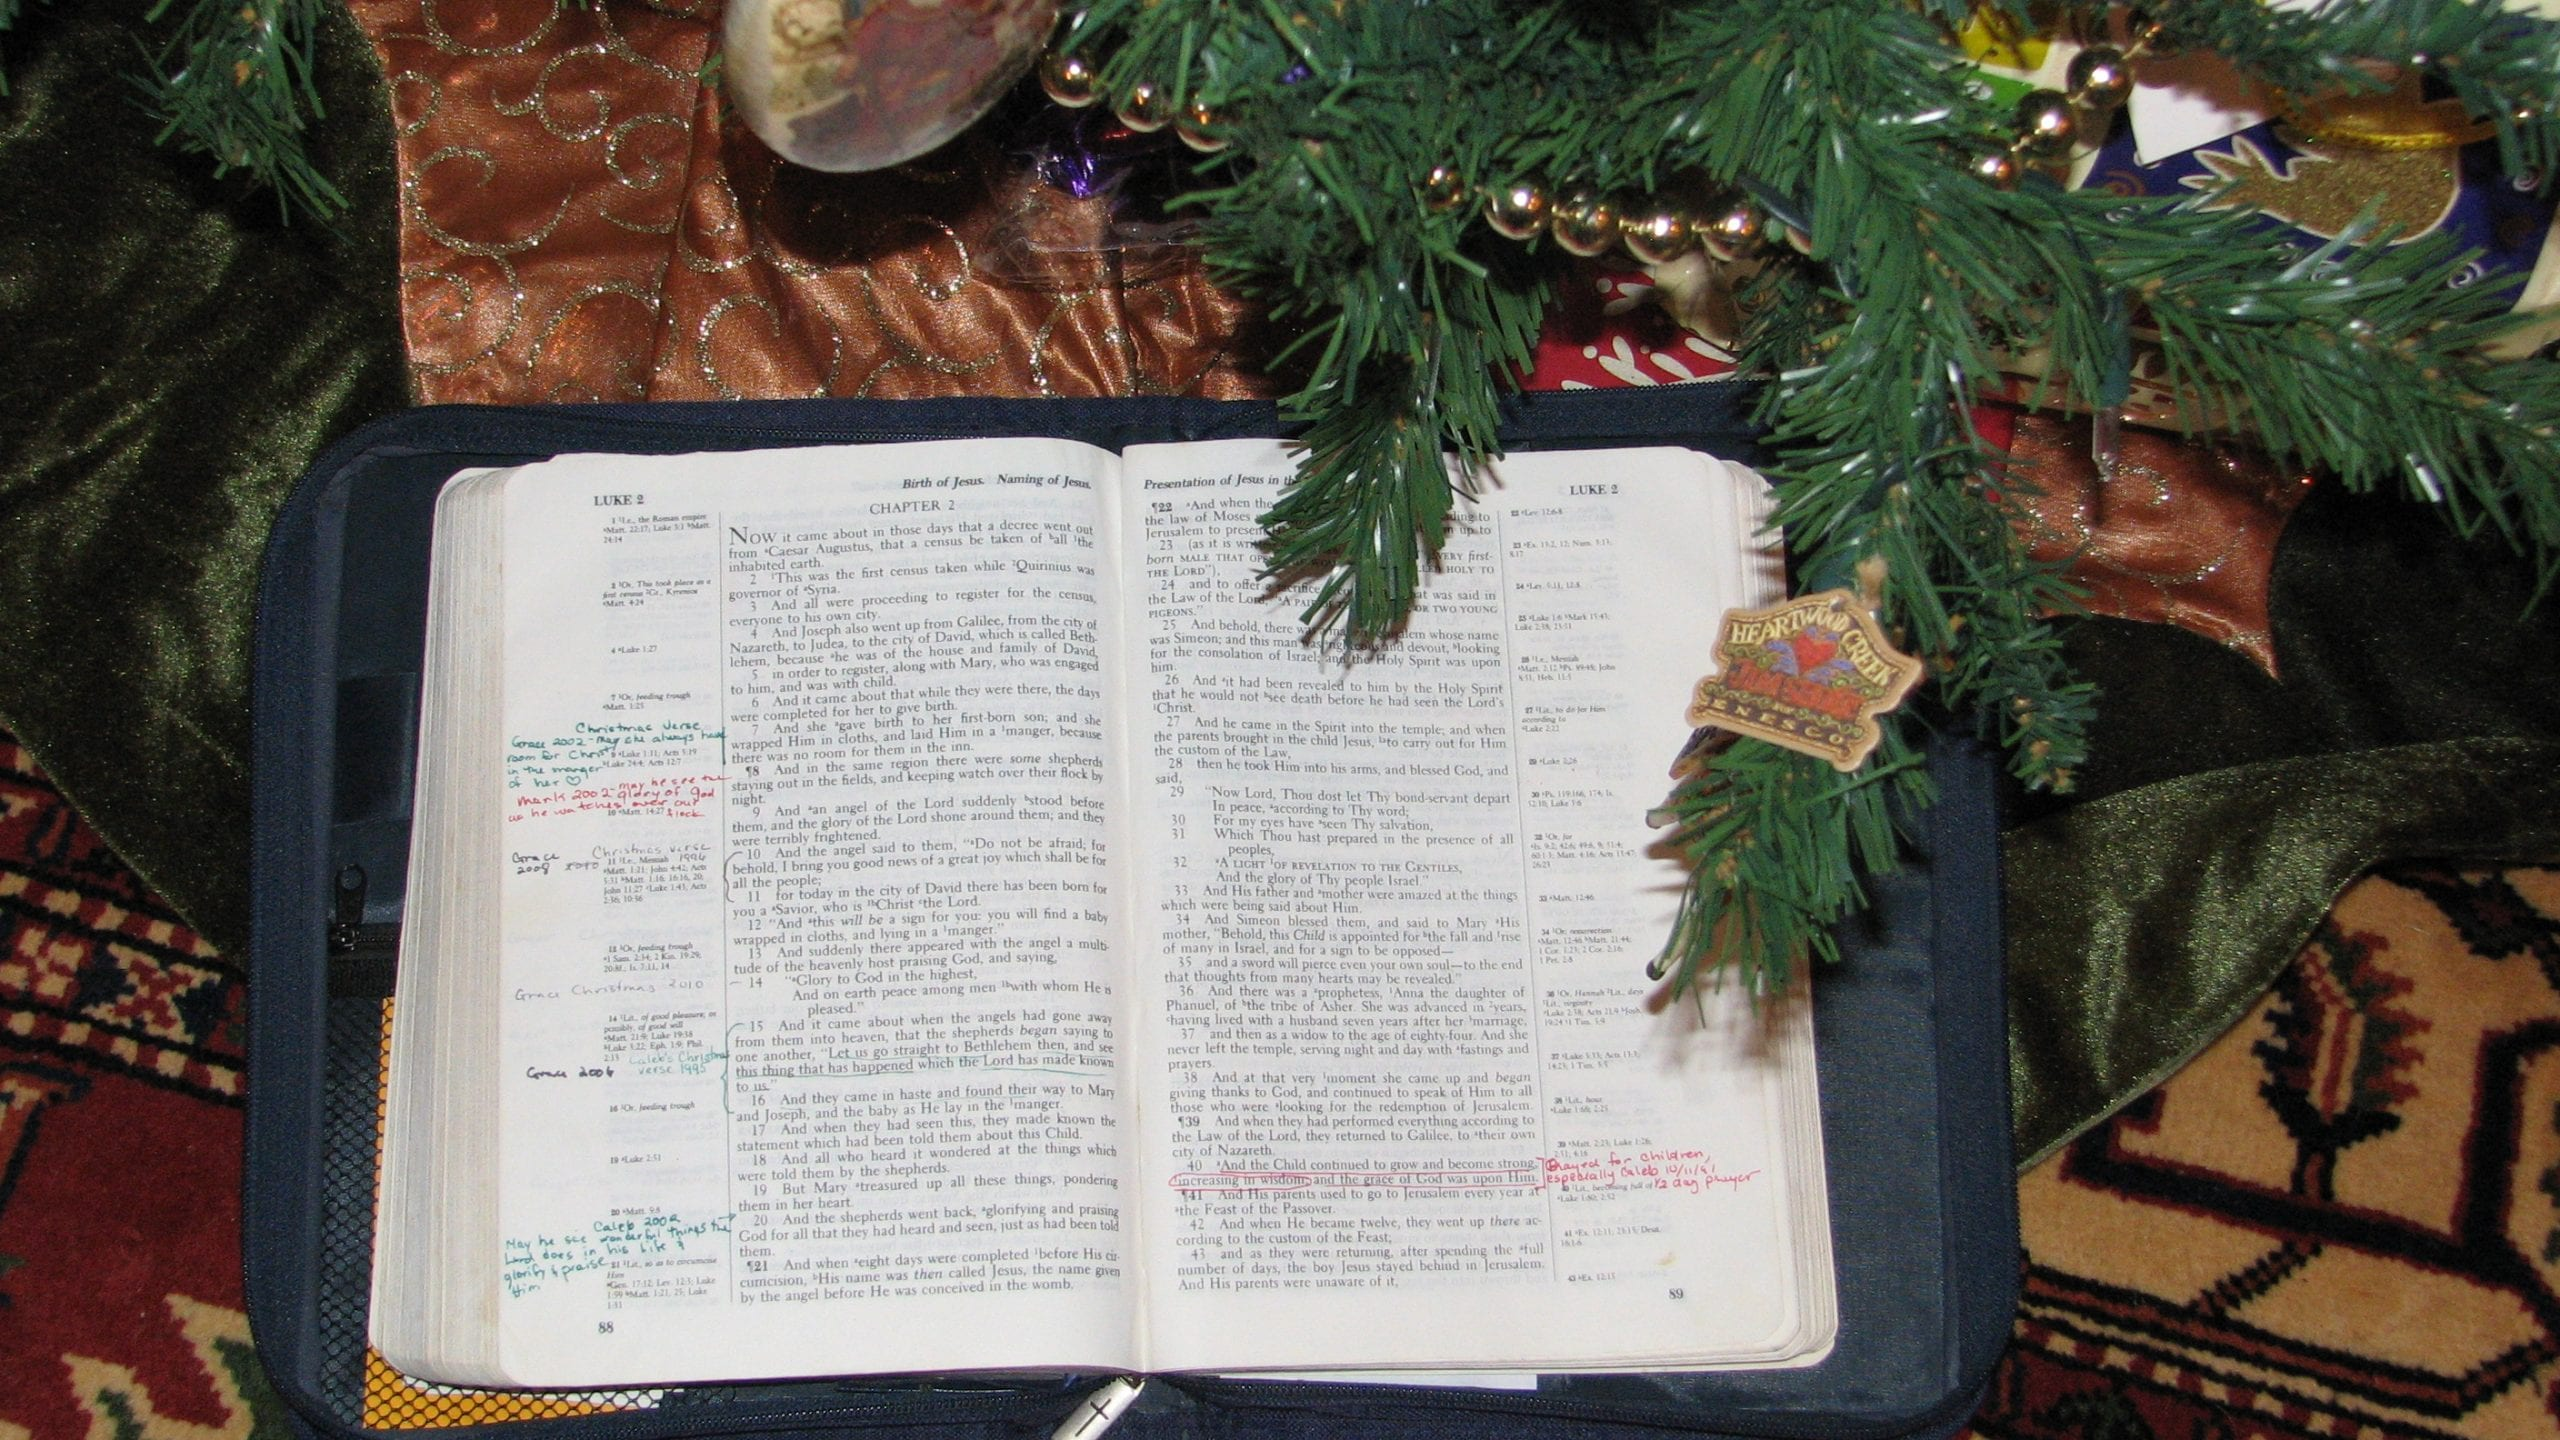 The Gift of a Christmas Verse